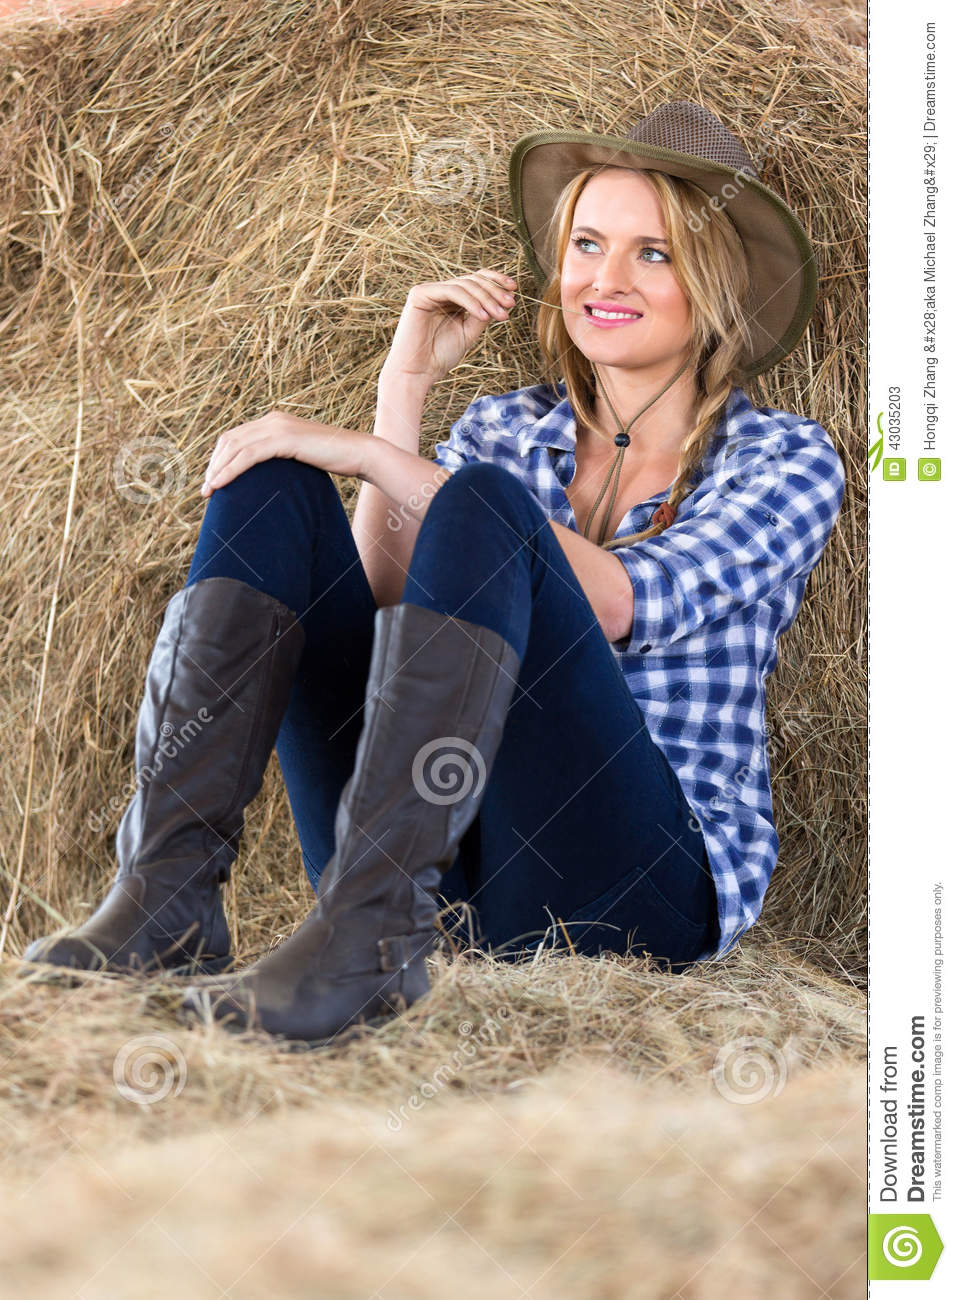 Girl farm photos 2